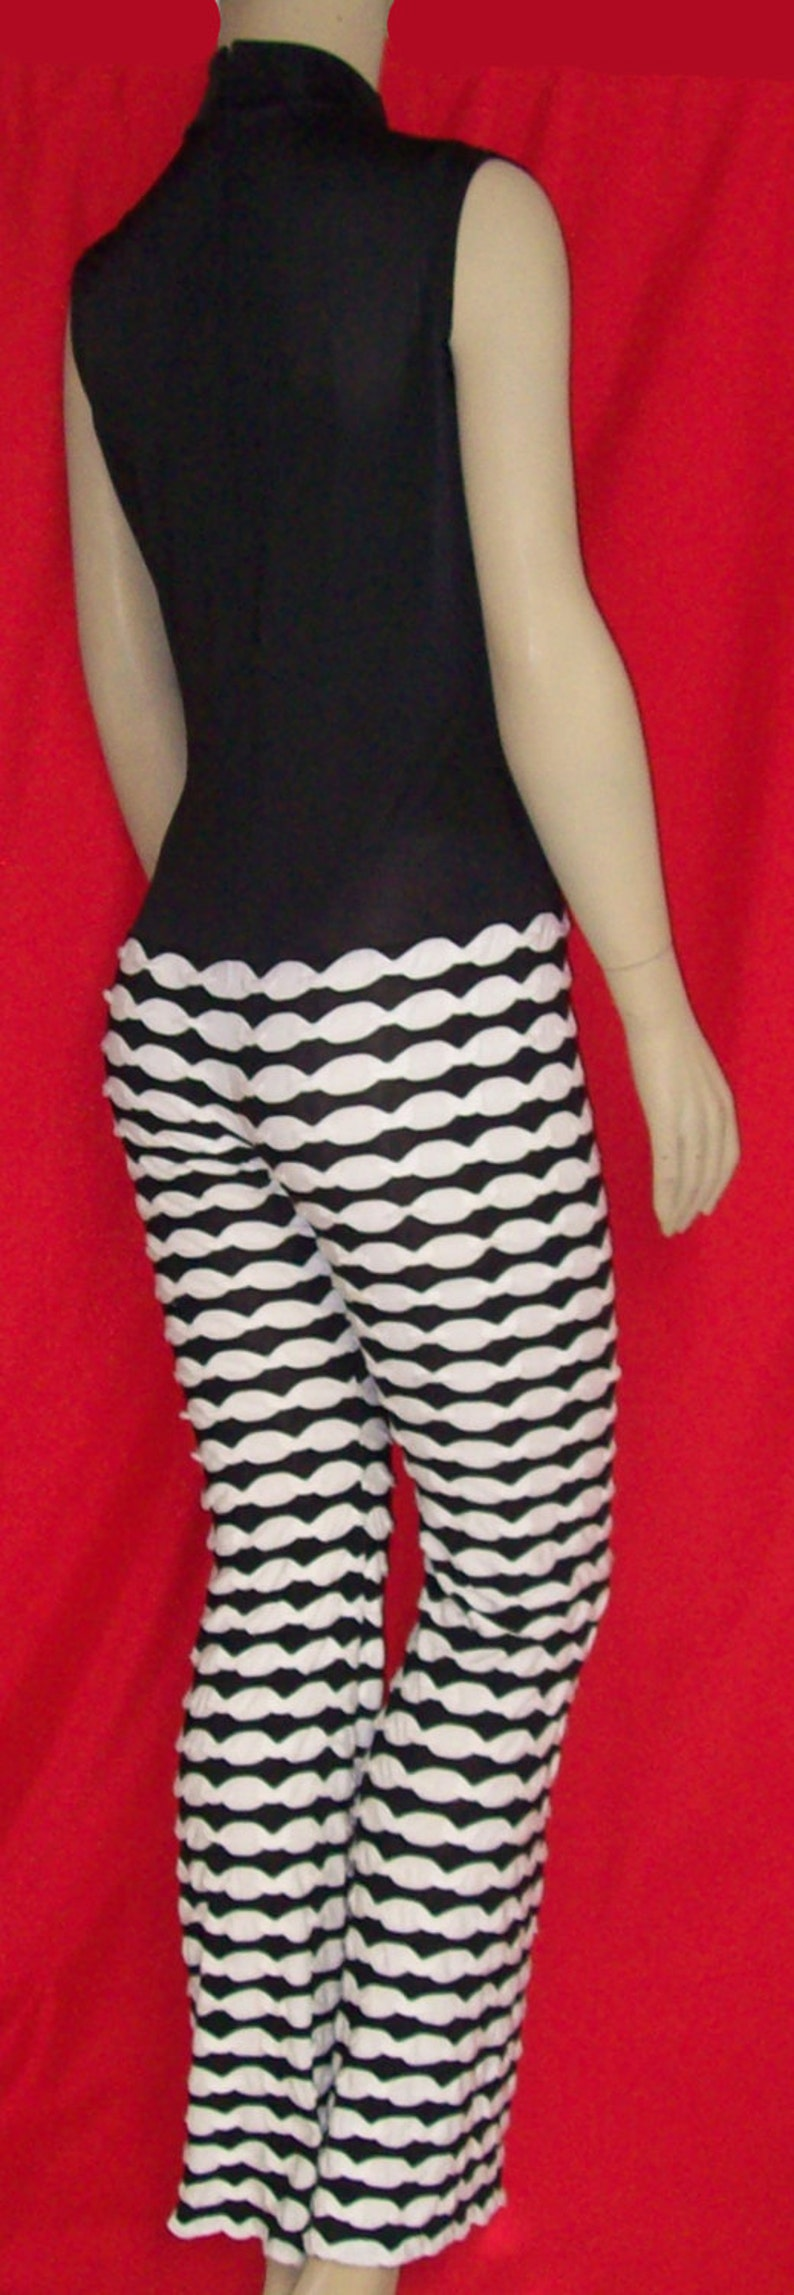 f44a78e14a28 Jumpsuit Black Stretch Spandex Sleeveless Top   Black and